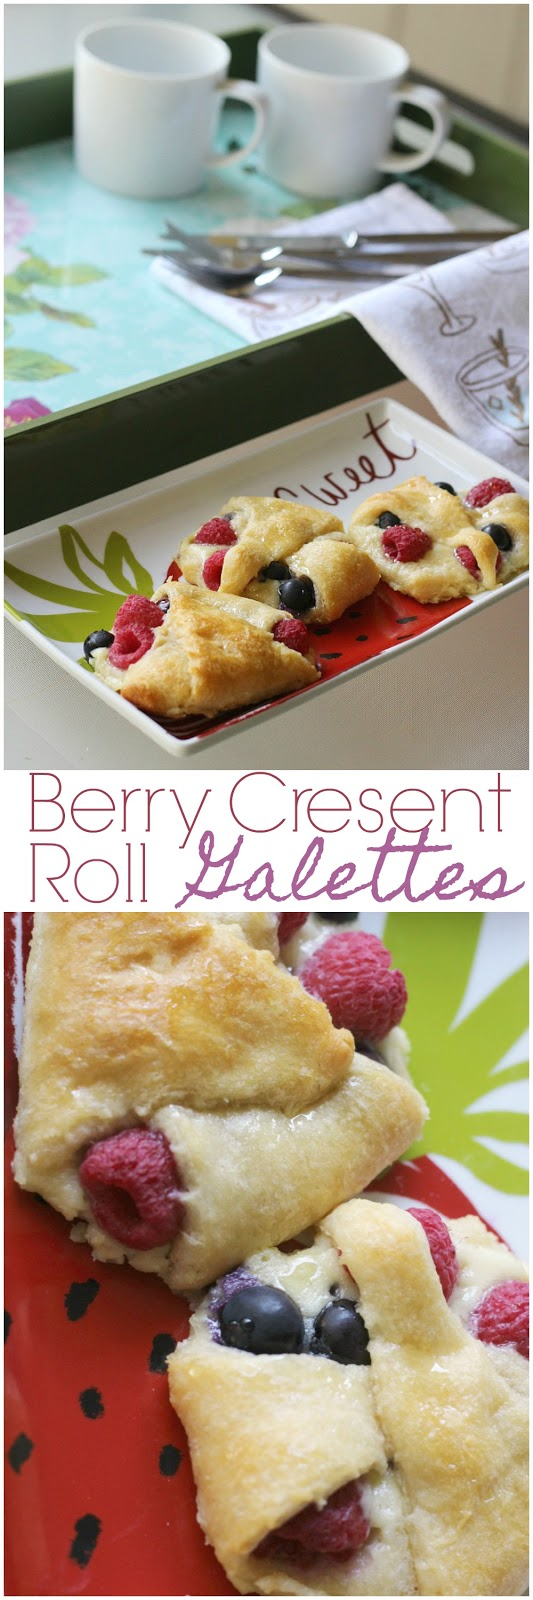 easy baking recipe, Easter brunch recipe, cresent roll recipe, fresh fruit